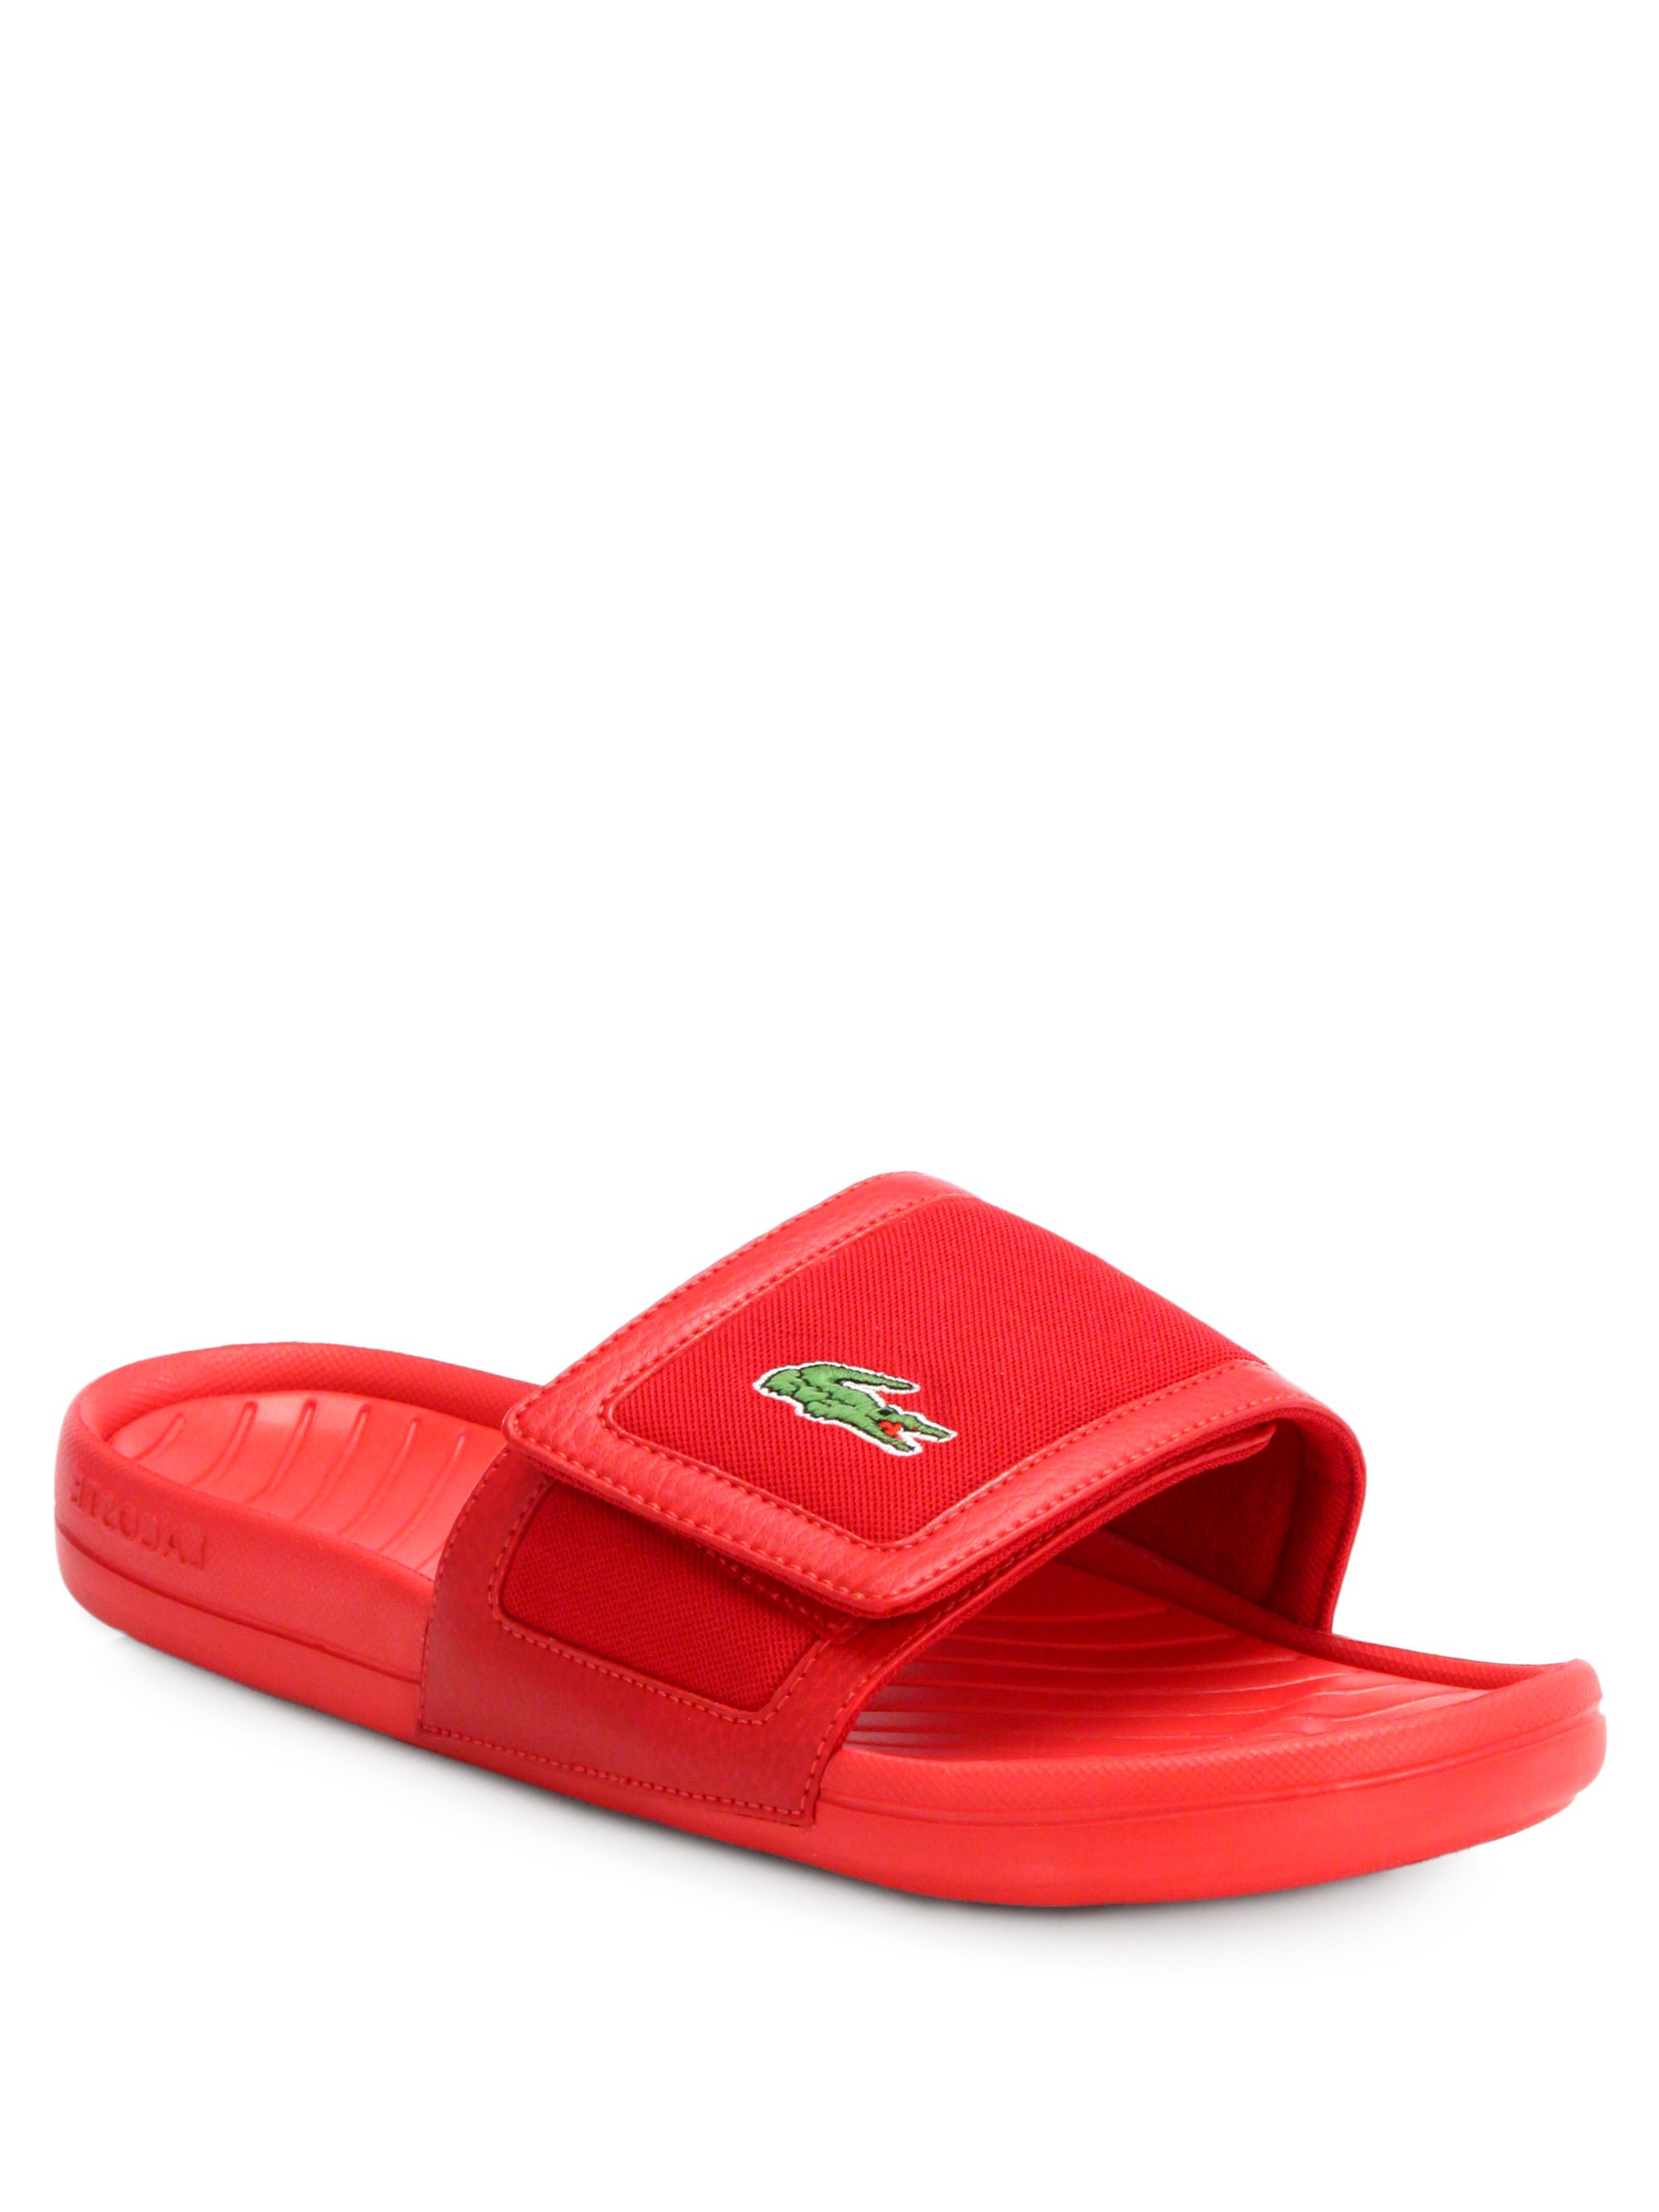 Lacoste Velcro Sandals In Red For Men Lyst